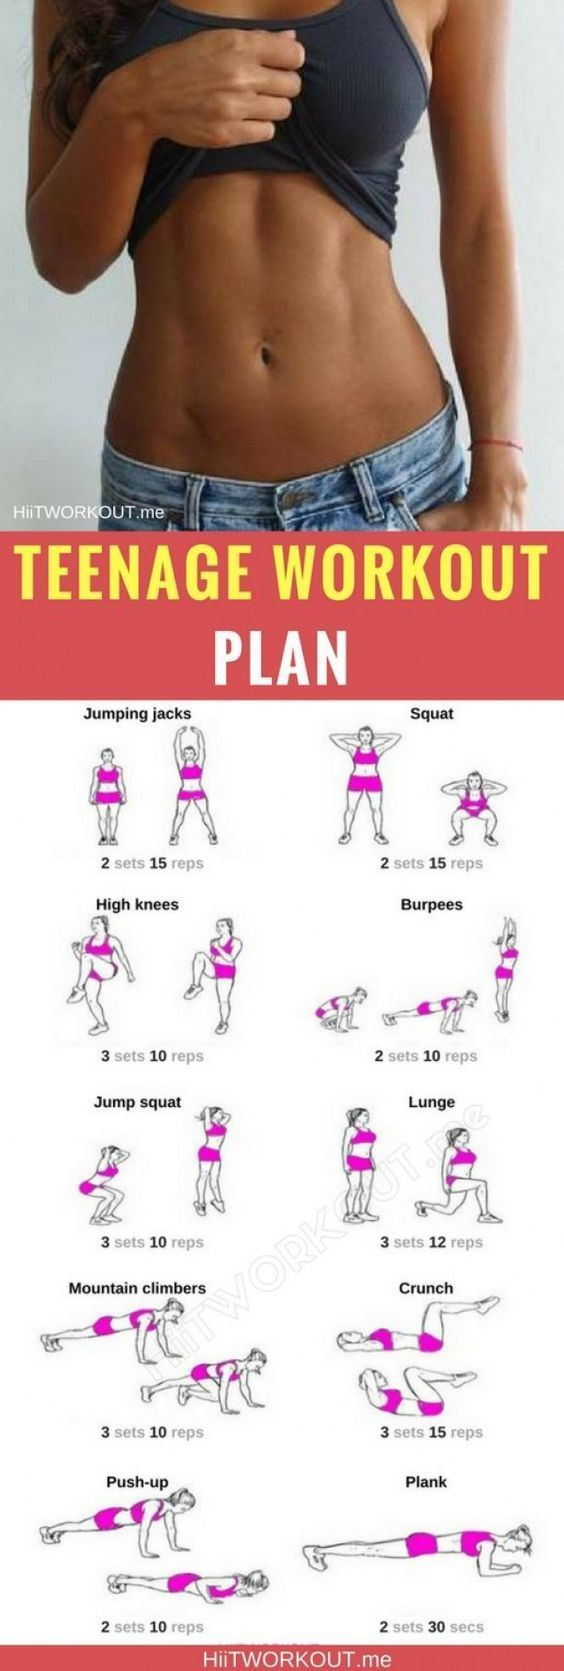 Workout for Teens at Home  work out - Fitness #Teens #work #Fitness